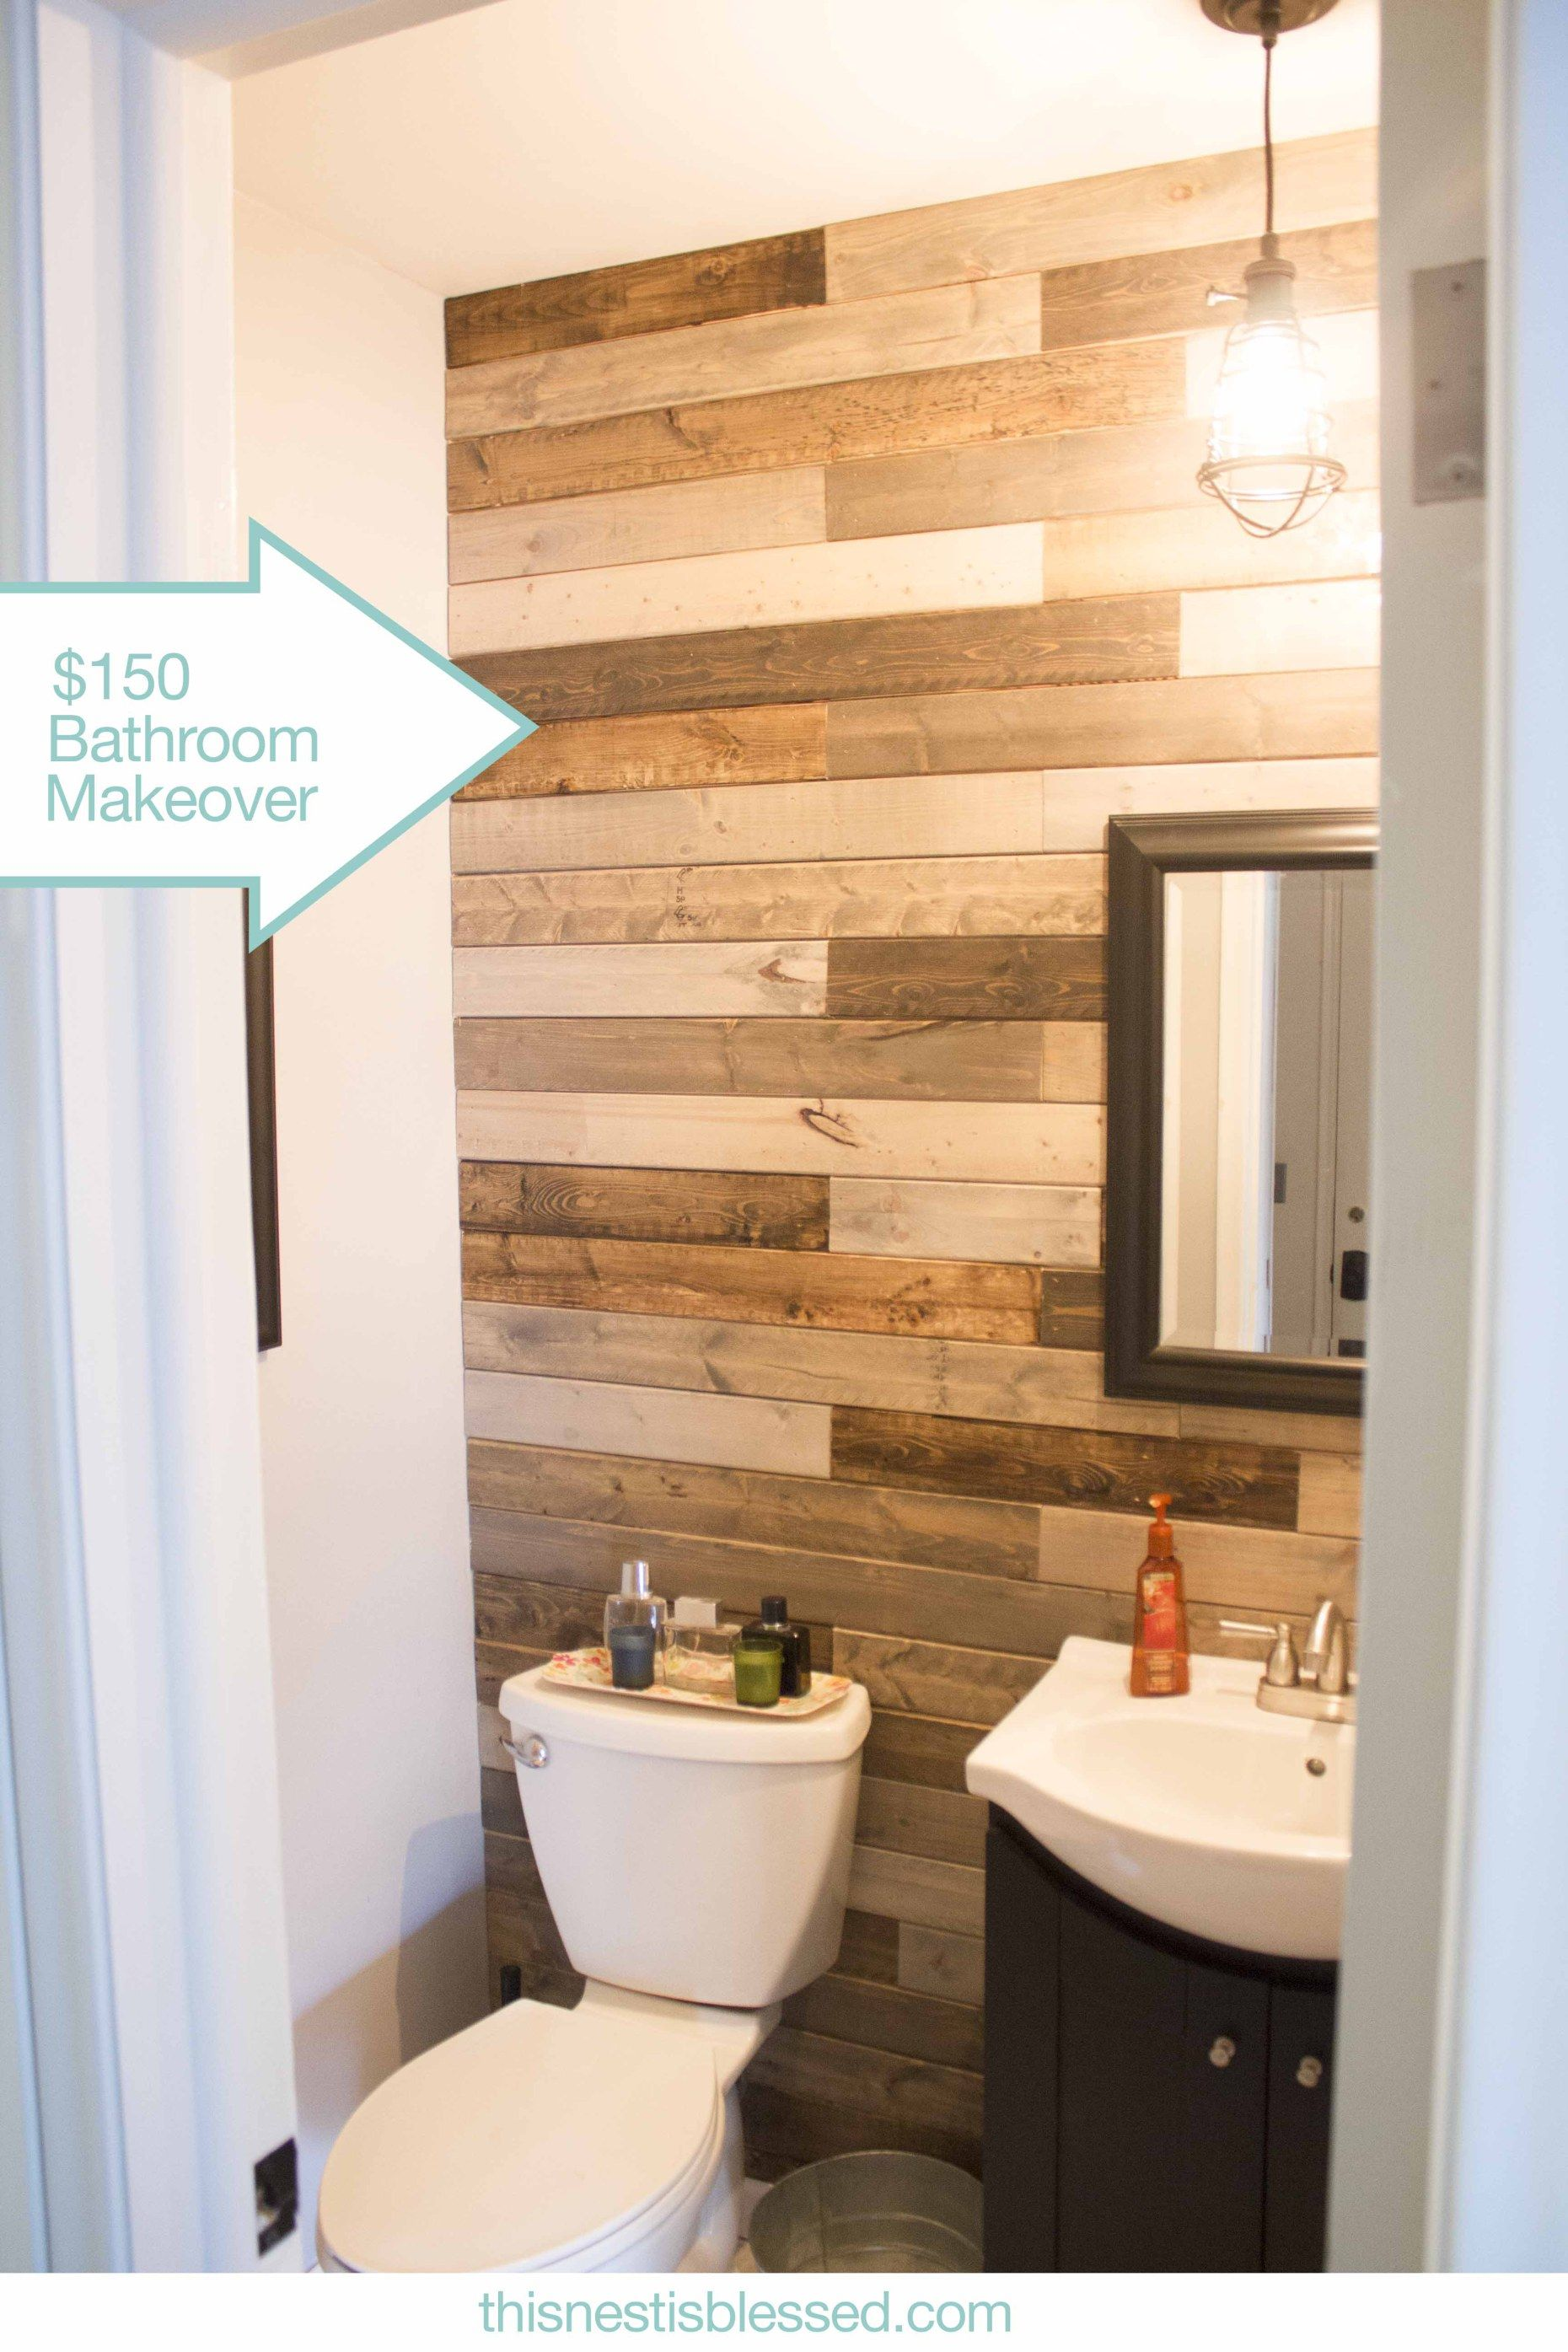 Weekend Bathroom Makeover For 150 This Nest Is Blessed Bathroom Makeover Home Diy Diy Pallet Wall